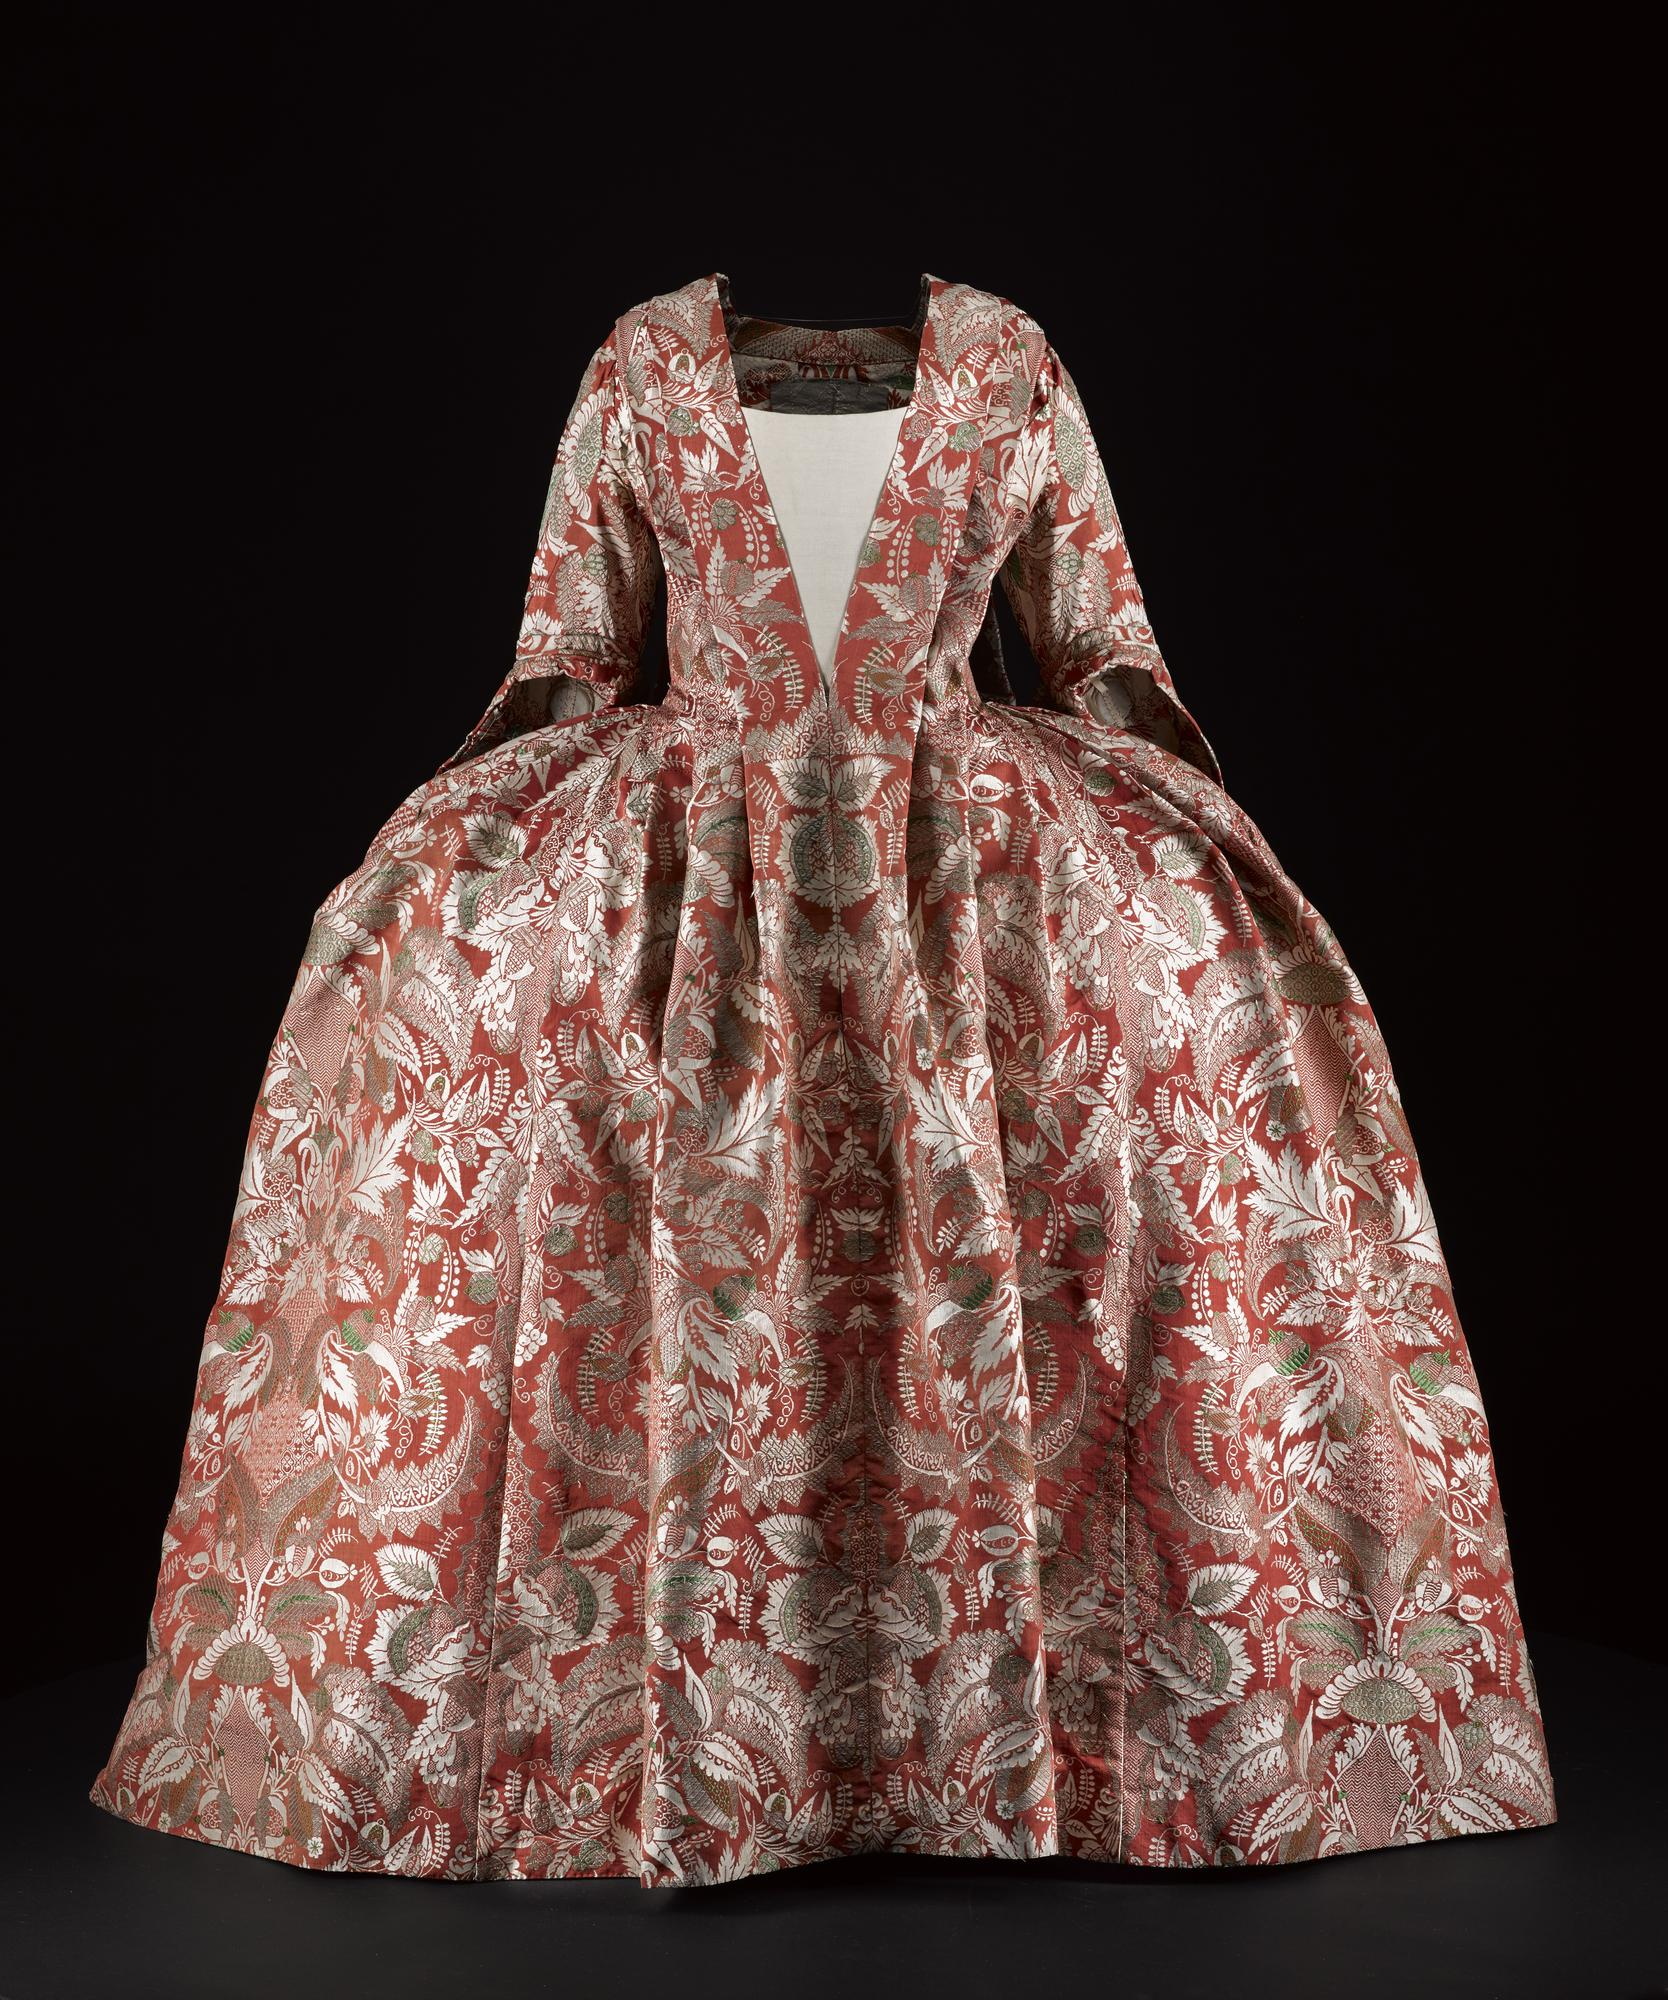 Woman's dress in red silk woven with a dense mirror repeat design of foliage in white, silver and green, in a sack (sacque) back or robe volante style, belonged to the Earls of Haddington, textile c. 1726-1728, dress c. 1740